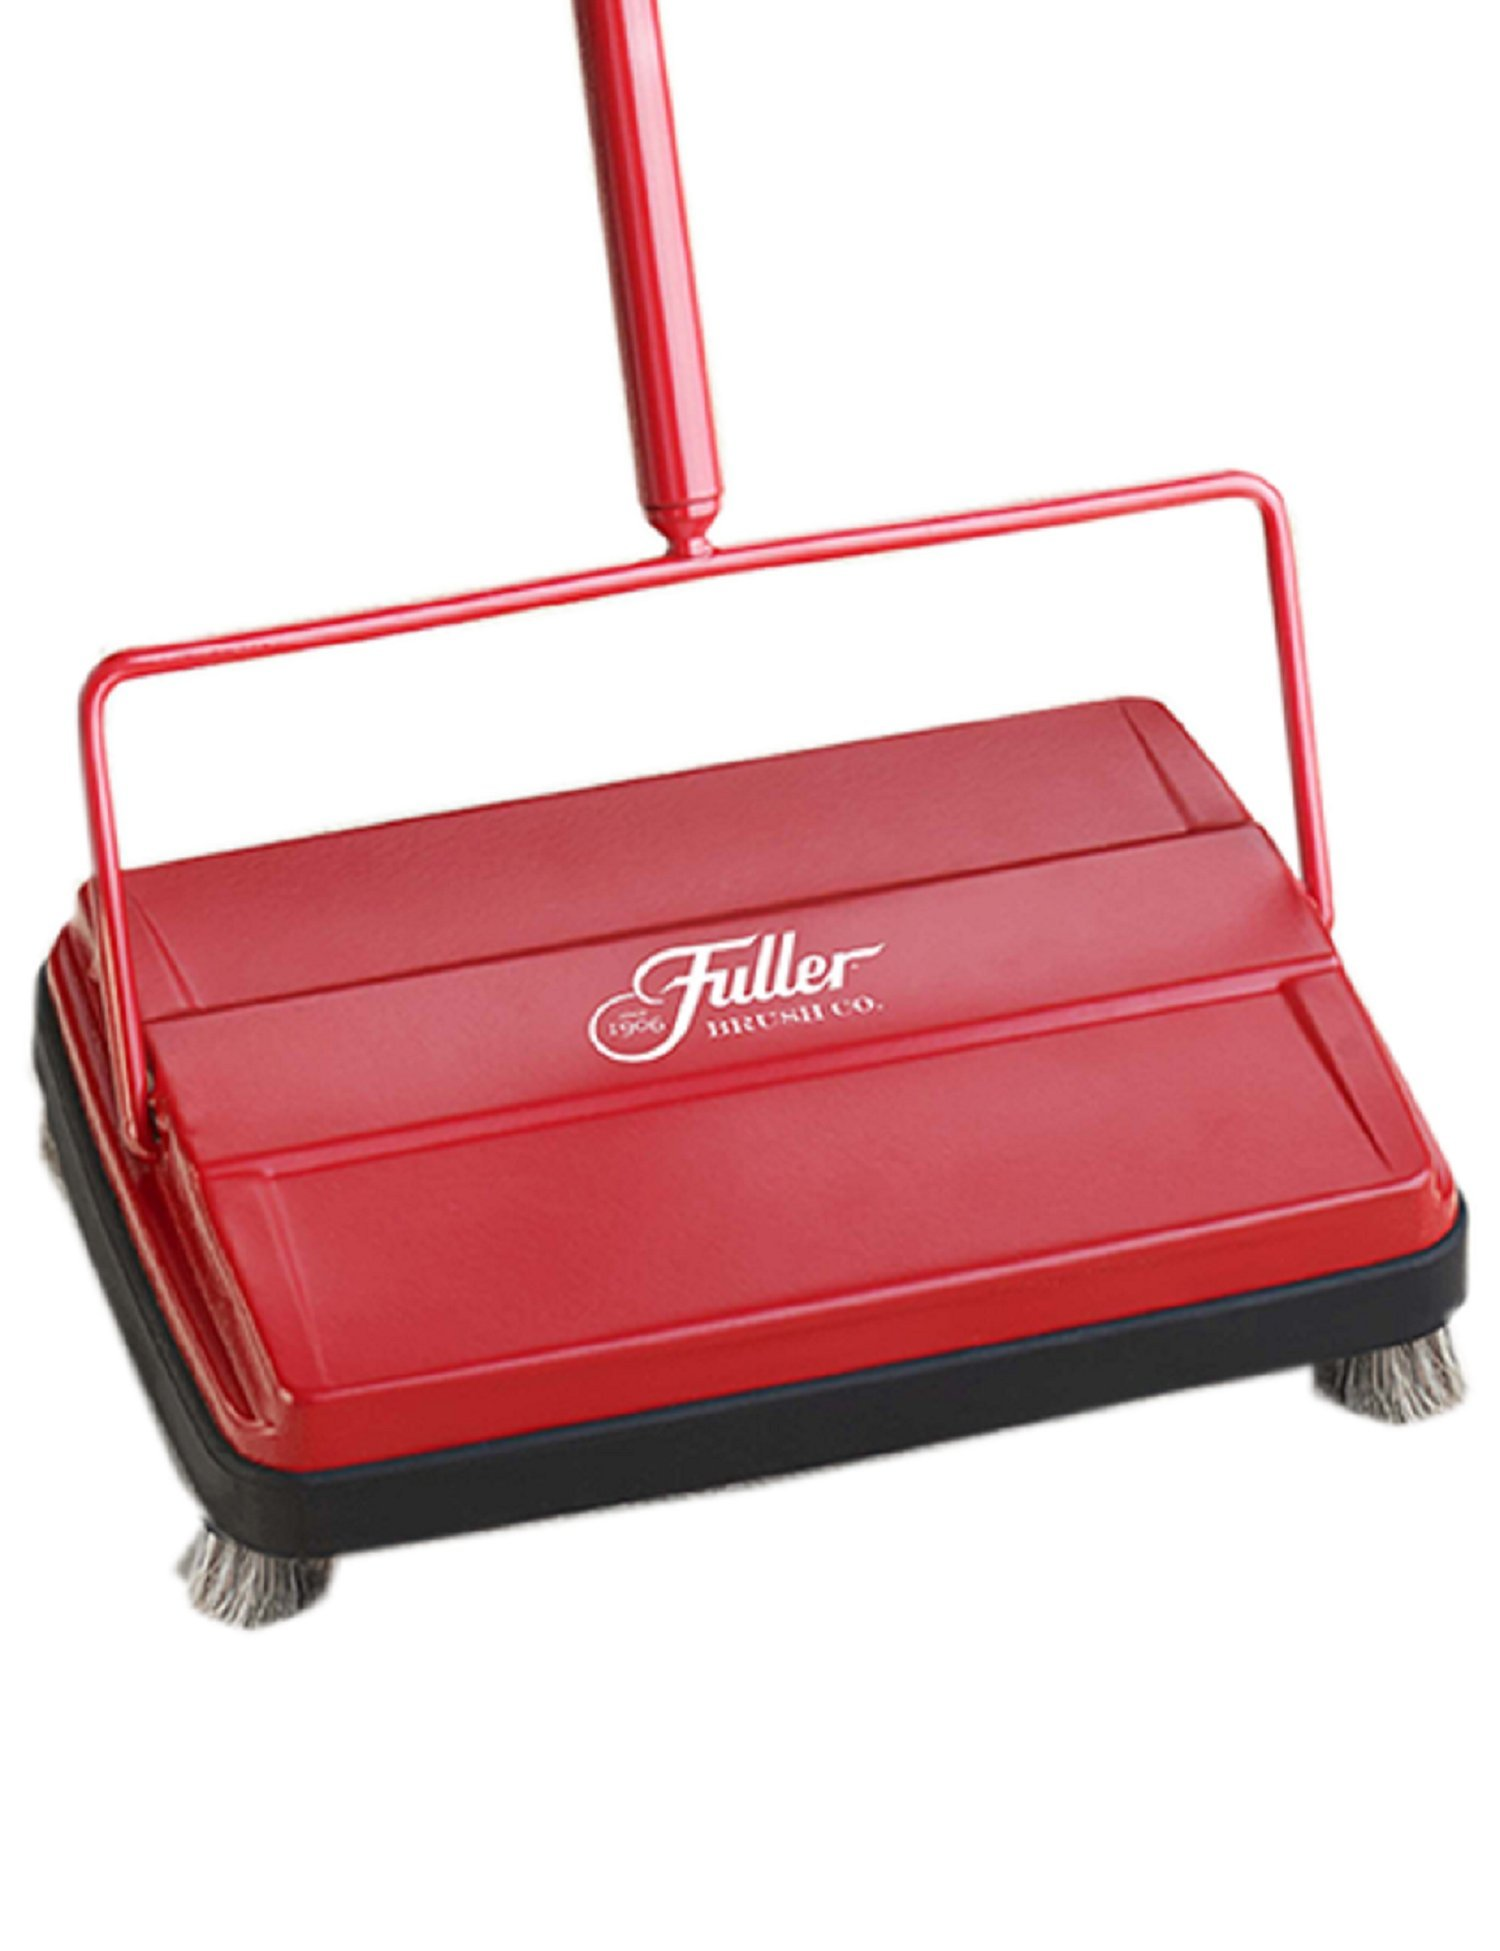 Fuller Brush Electrostatic Carpet & Floor Sweeper - 9'' Cleaning Path - Red